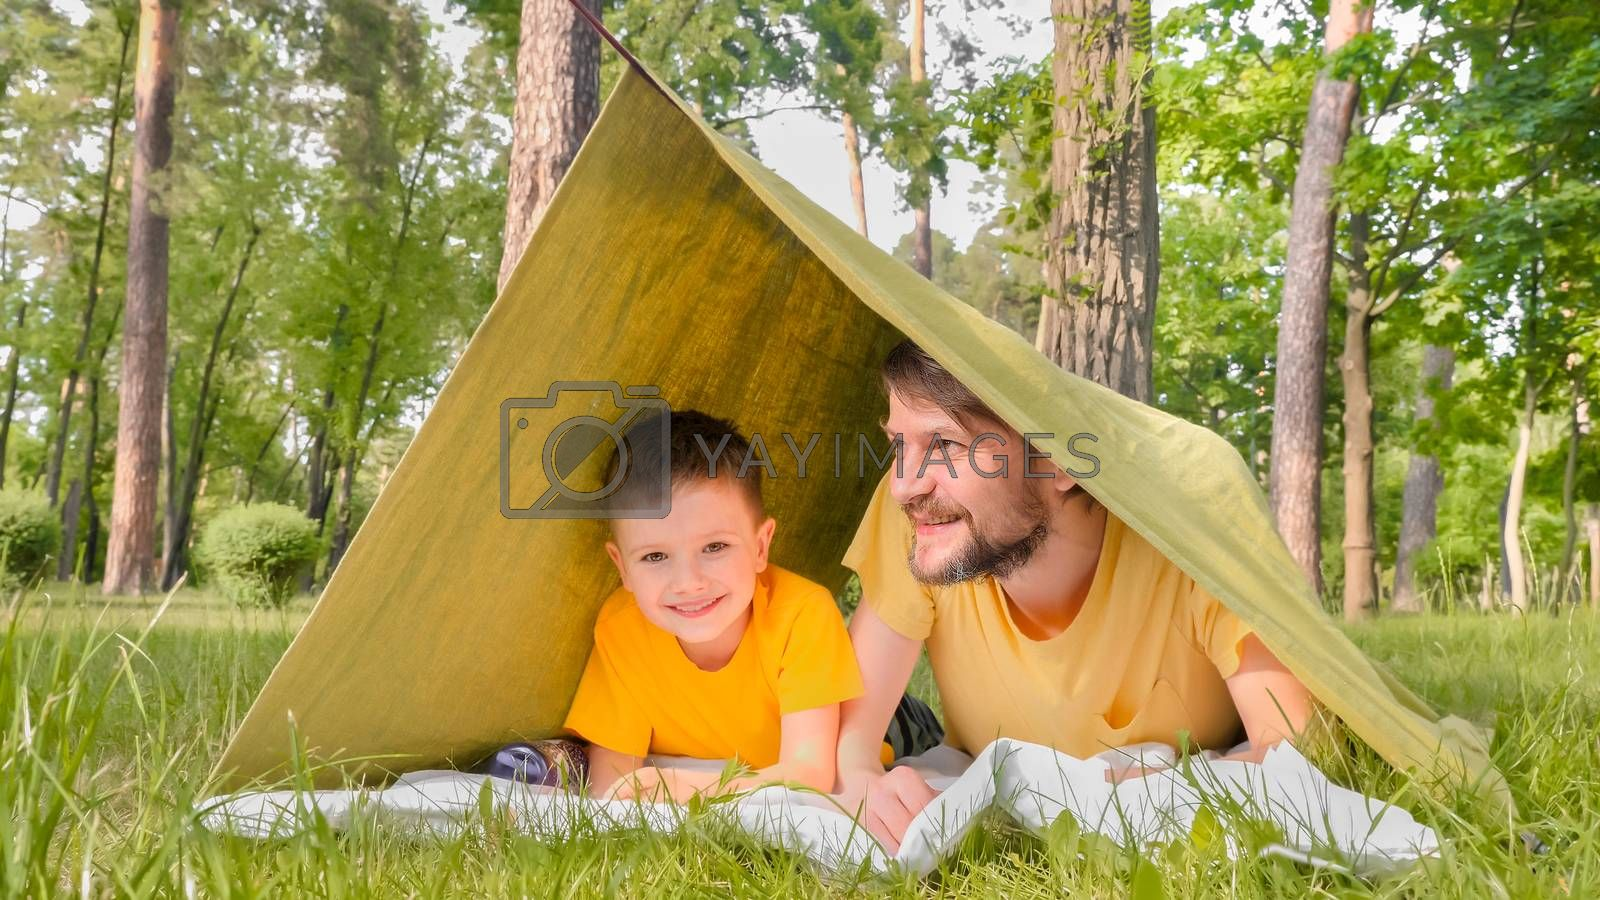 Smiling father with son in tent on green grass having fun. Family vacation in nature in the park. Father and son communicate in a house with a blanket. Travel close to home. Childhood concept.